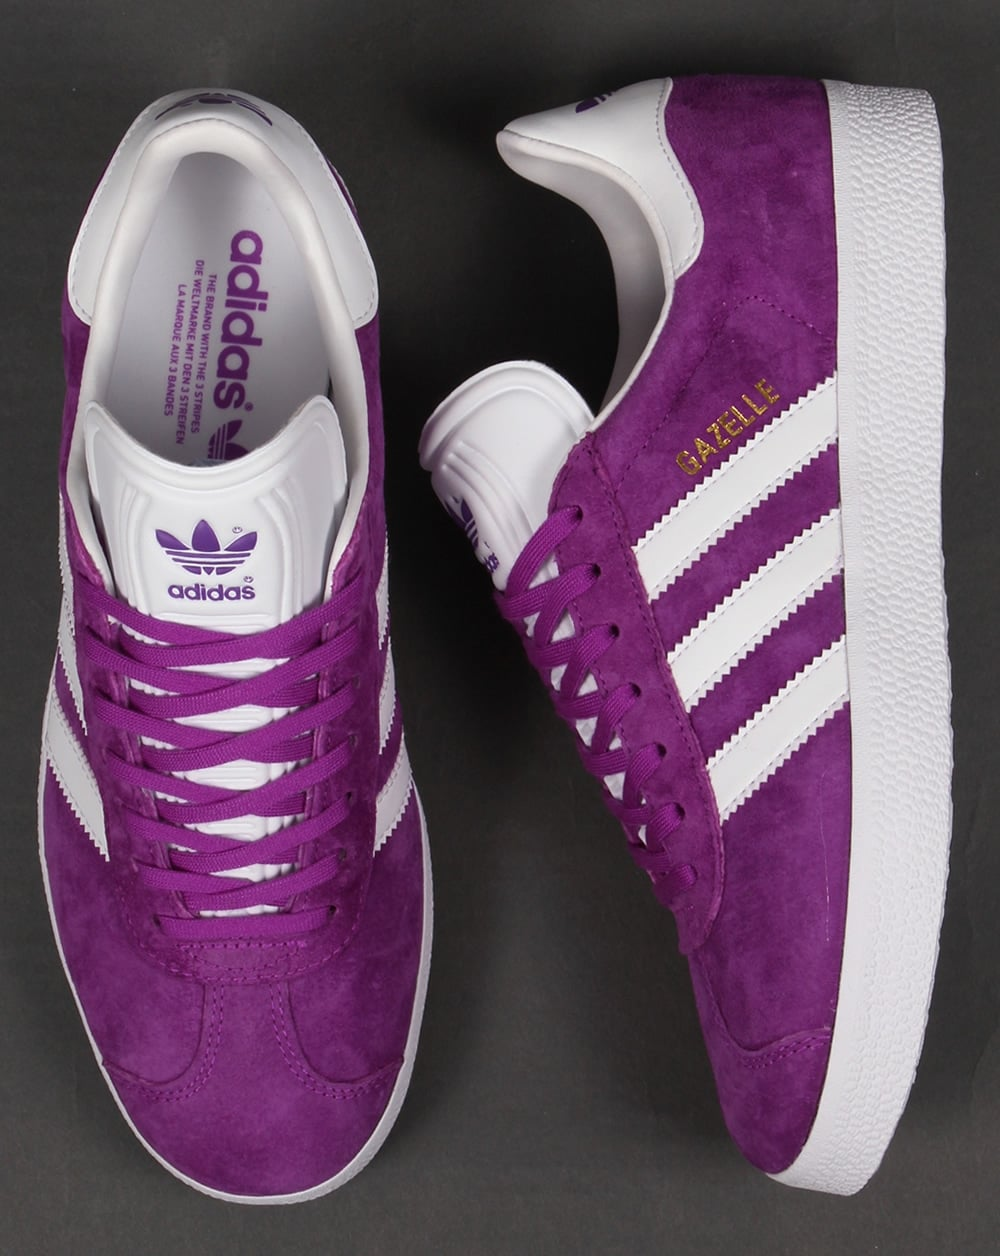 Mens Adidas Shoes Gazelle Purple